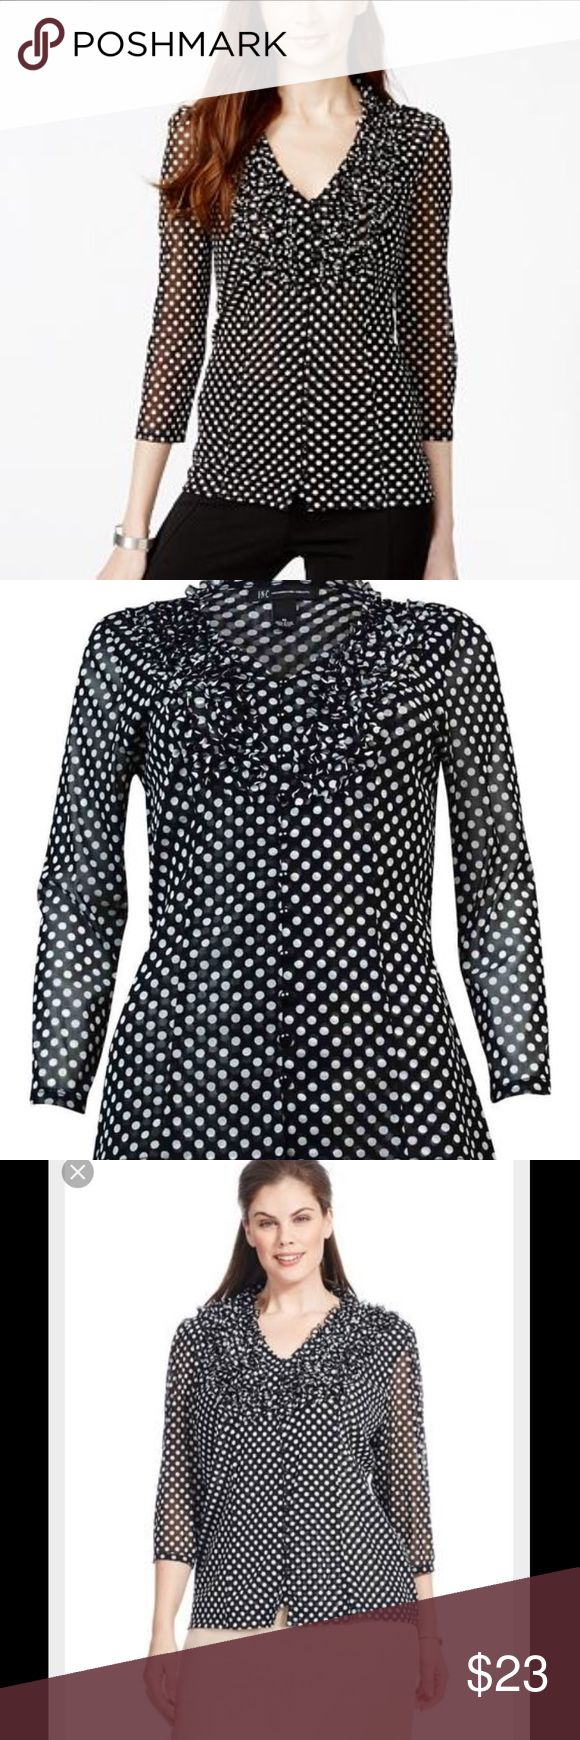 Polka Dot Blouse Black and white polka dot top, light flowy fabric, fabric on sleeves is sheer. INC International Concepts Tops Blouses